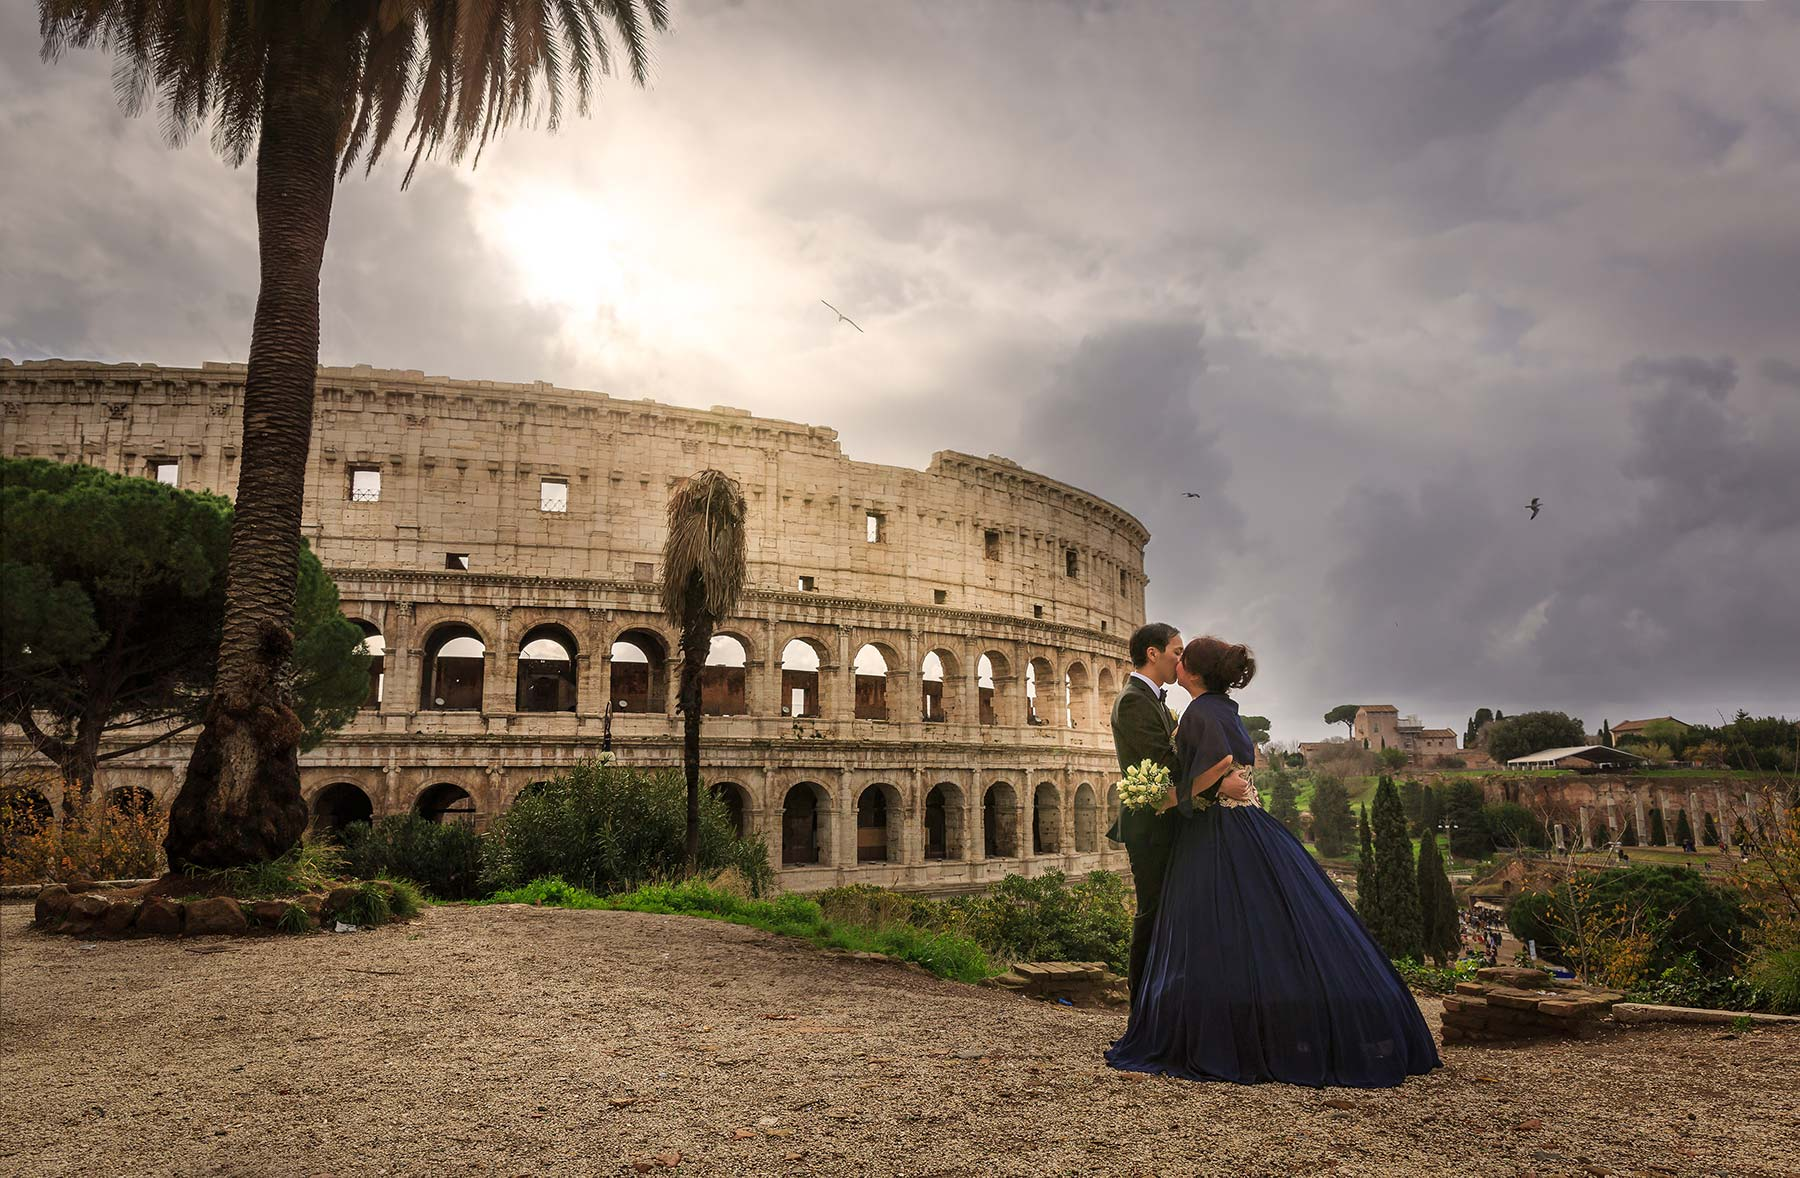 Are you planning a destination wedding in Rome? We'll be happy to record your memories! Studio inFocus Destination Weddings in Rome